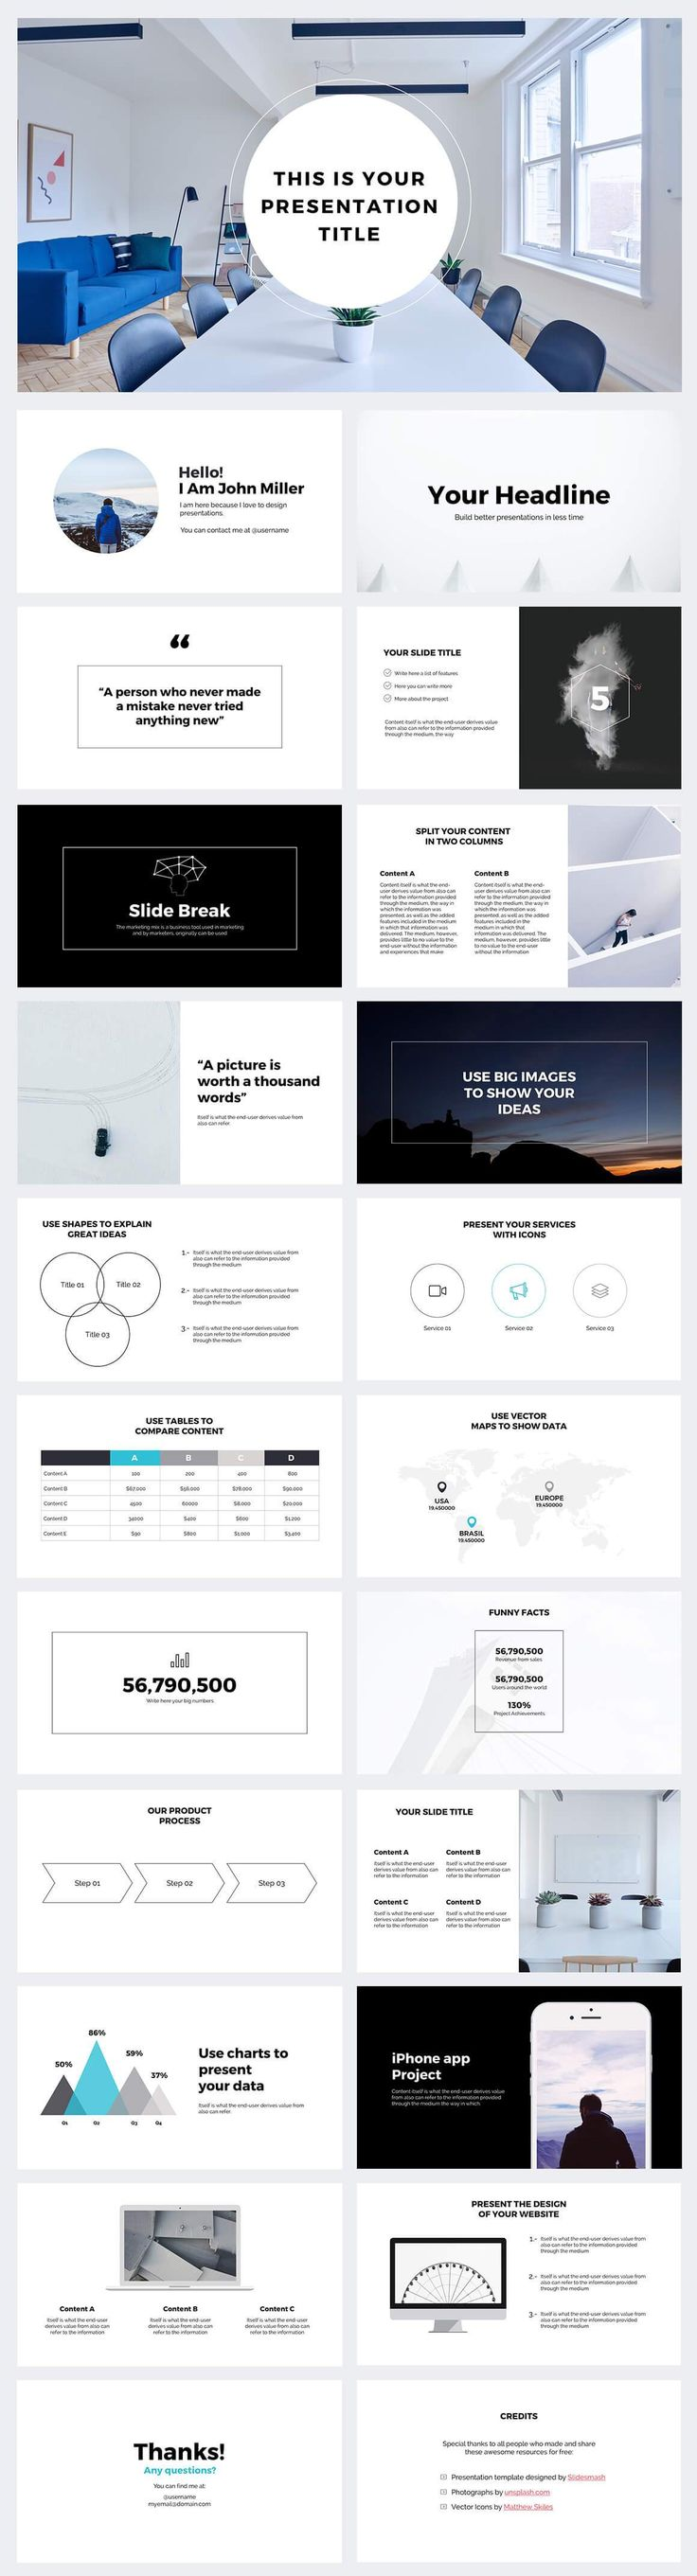 7 best free powerpoint templates on behance images on pinterest, Presentation templates